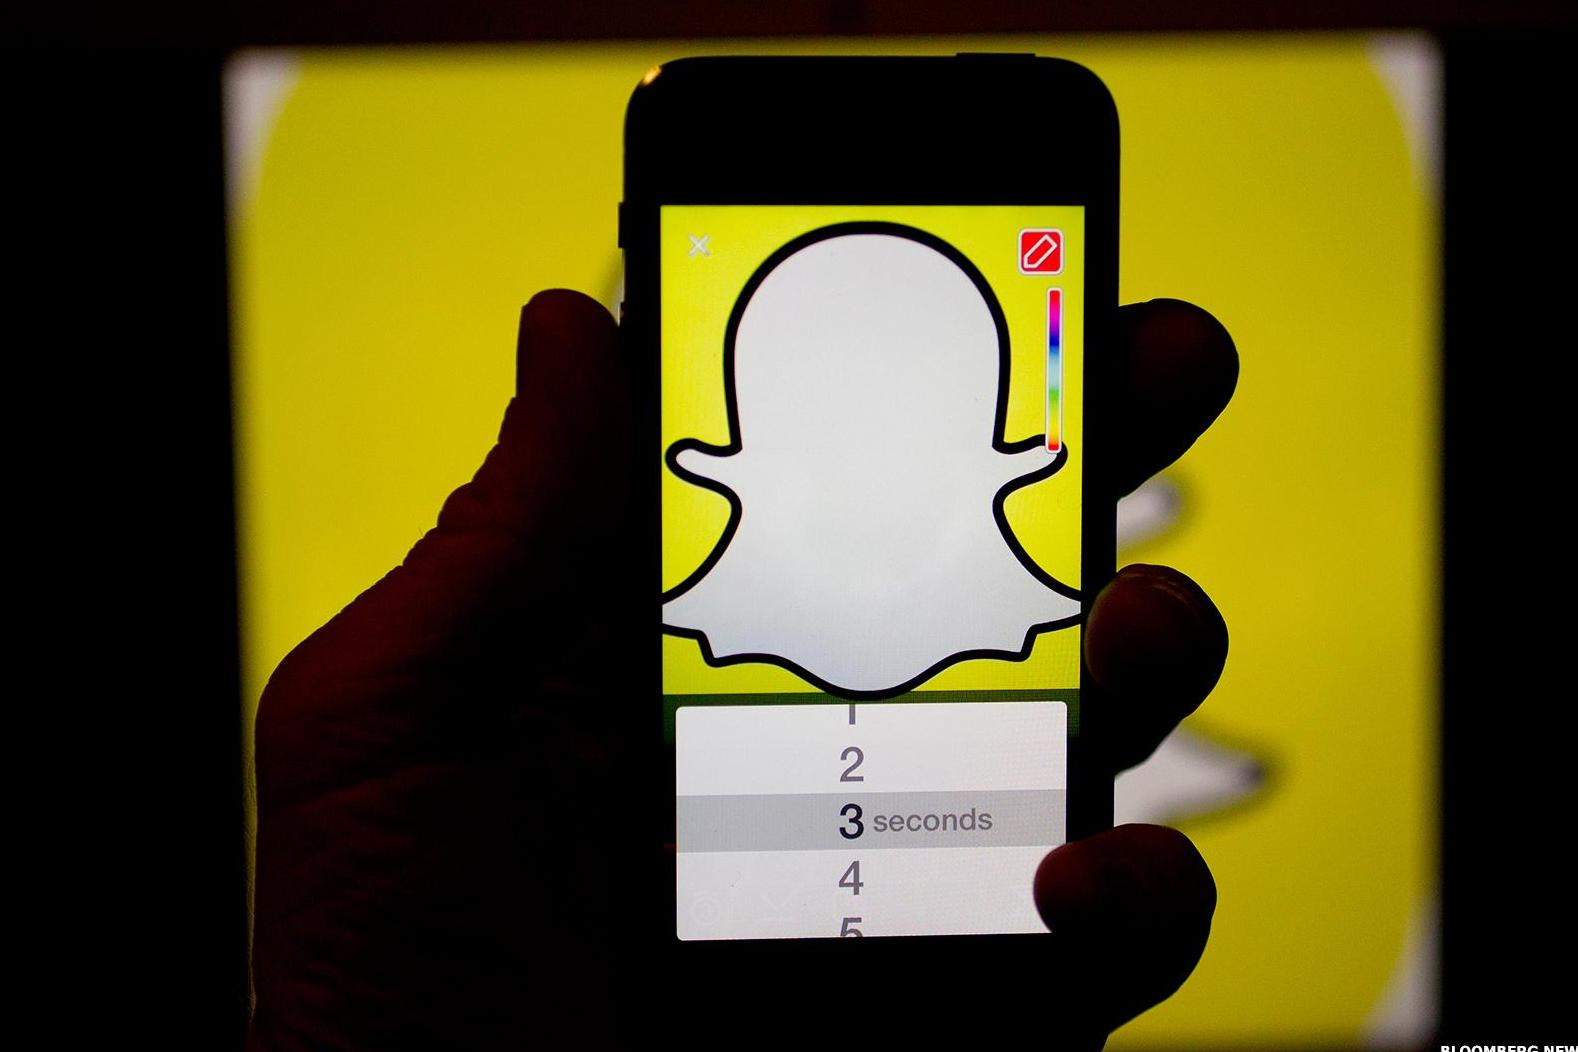 Paedophile Banned from Using Snapchat in Landmark Ruling